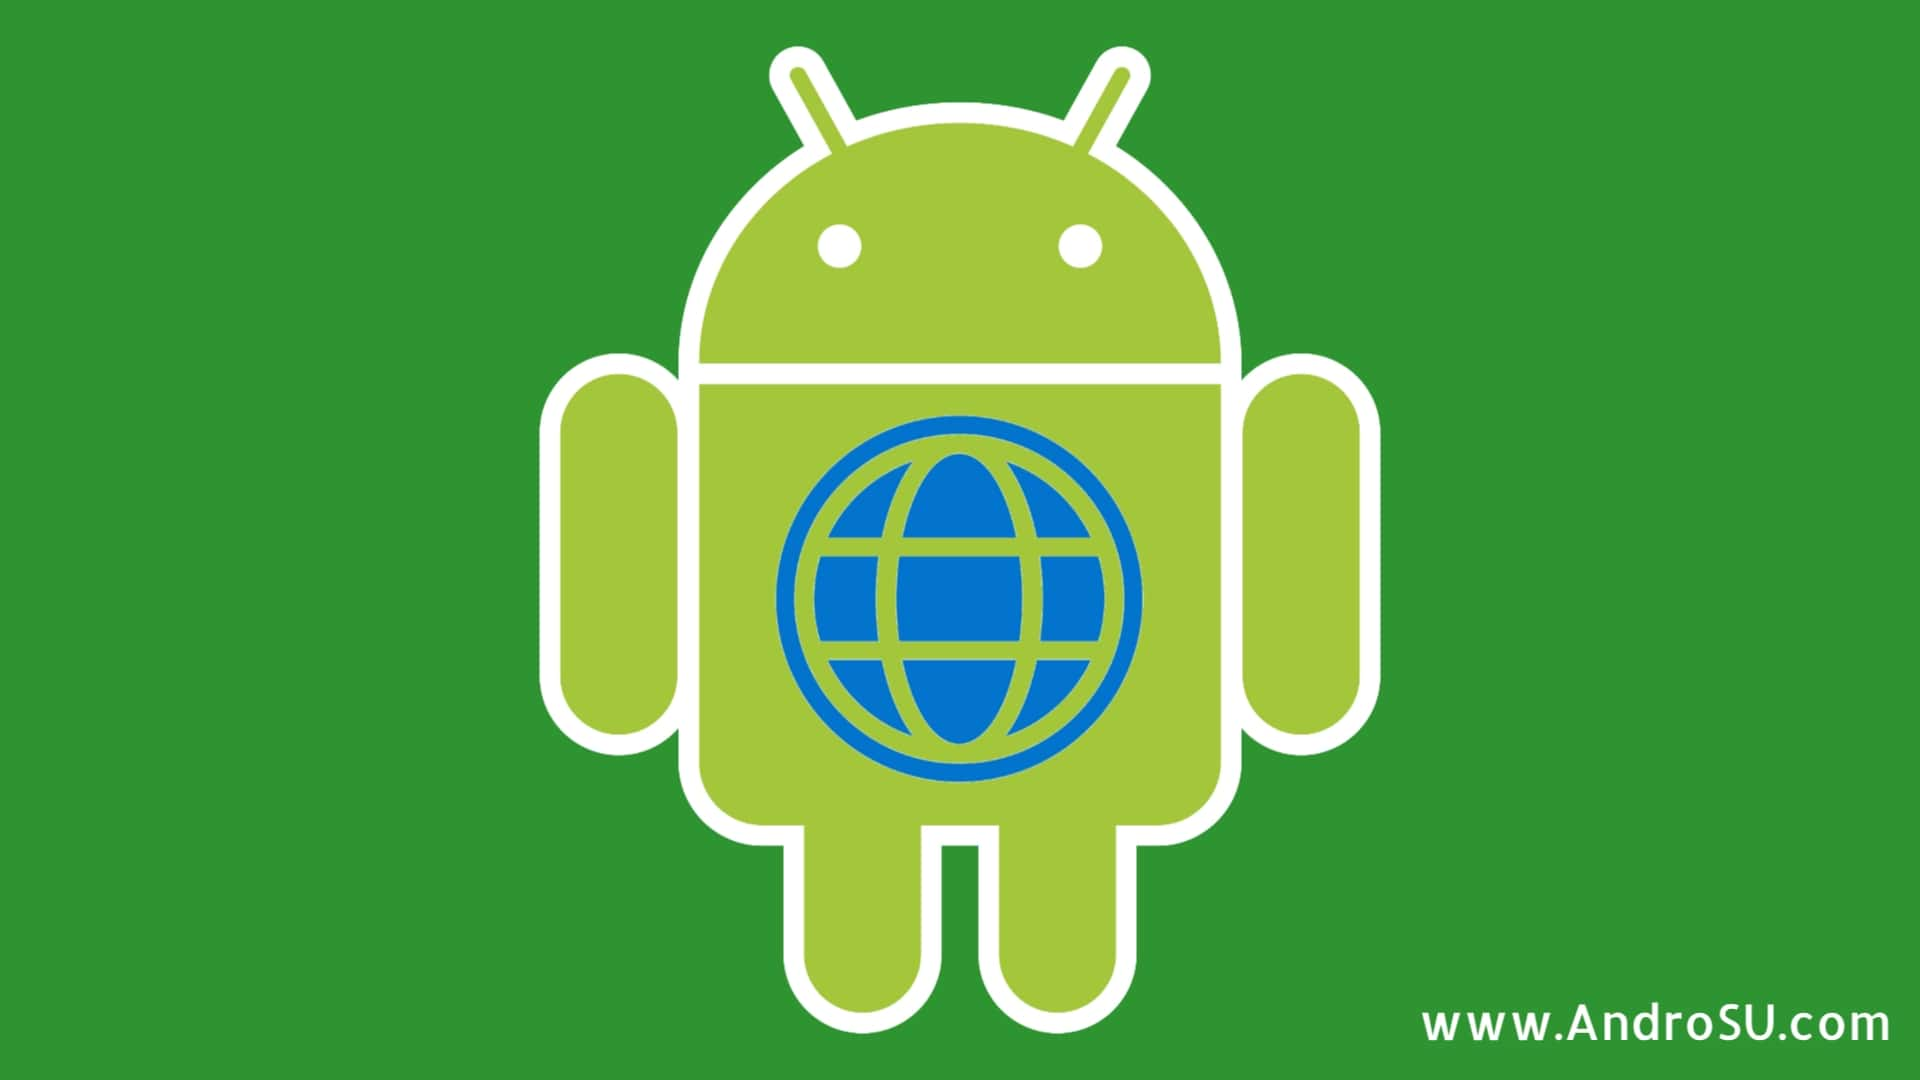 Deploy Web App Android, Create Website on Android, Make Website on Android